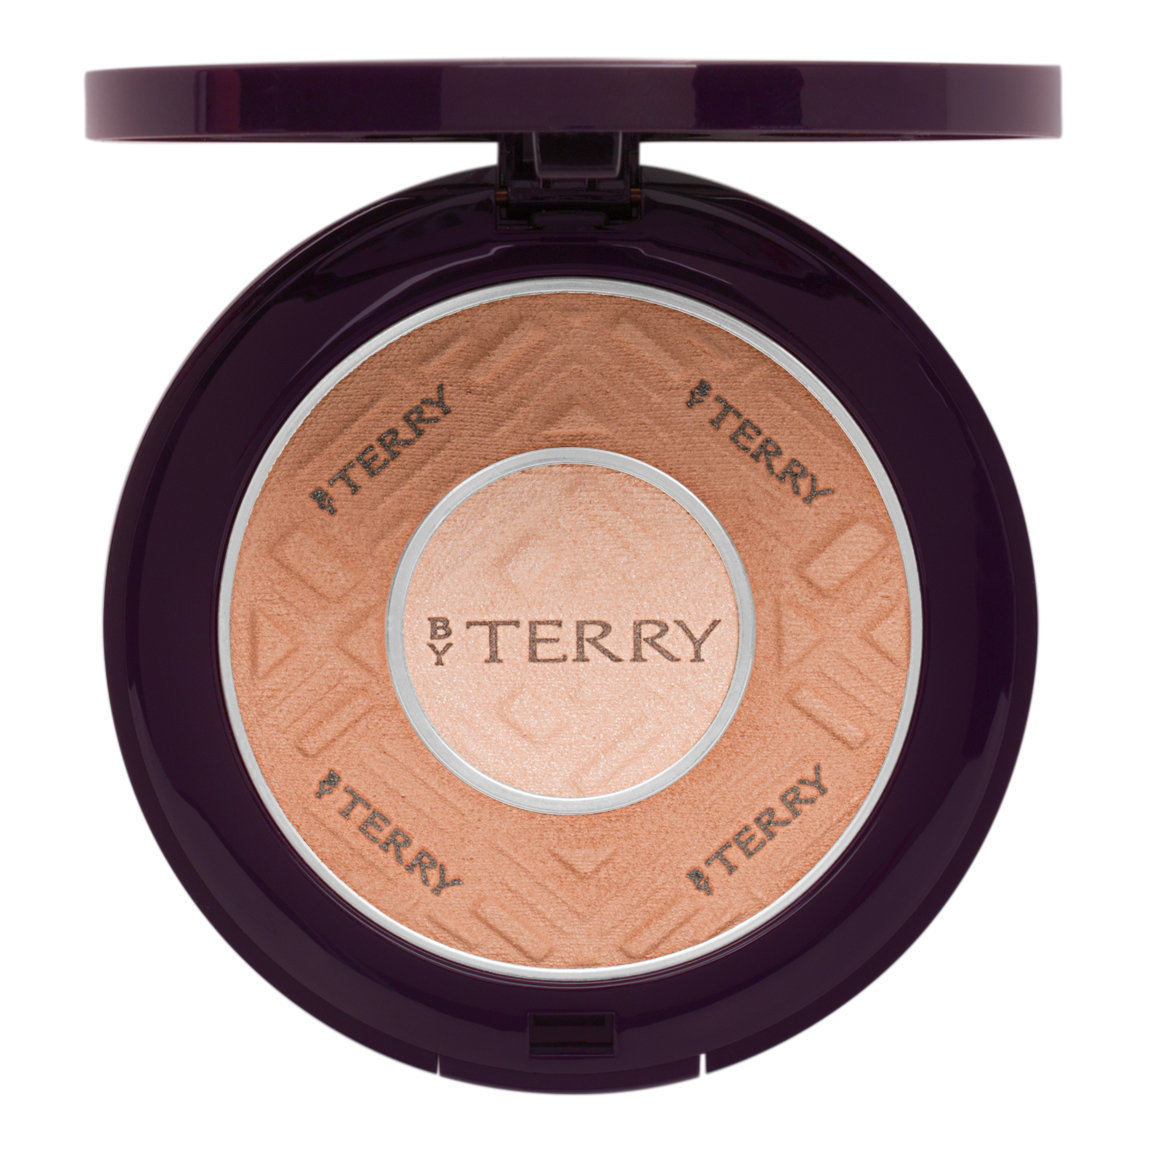 BY TERRY Compact-Expert Dual Powder 4 Beige Nude product swatch.